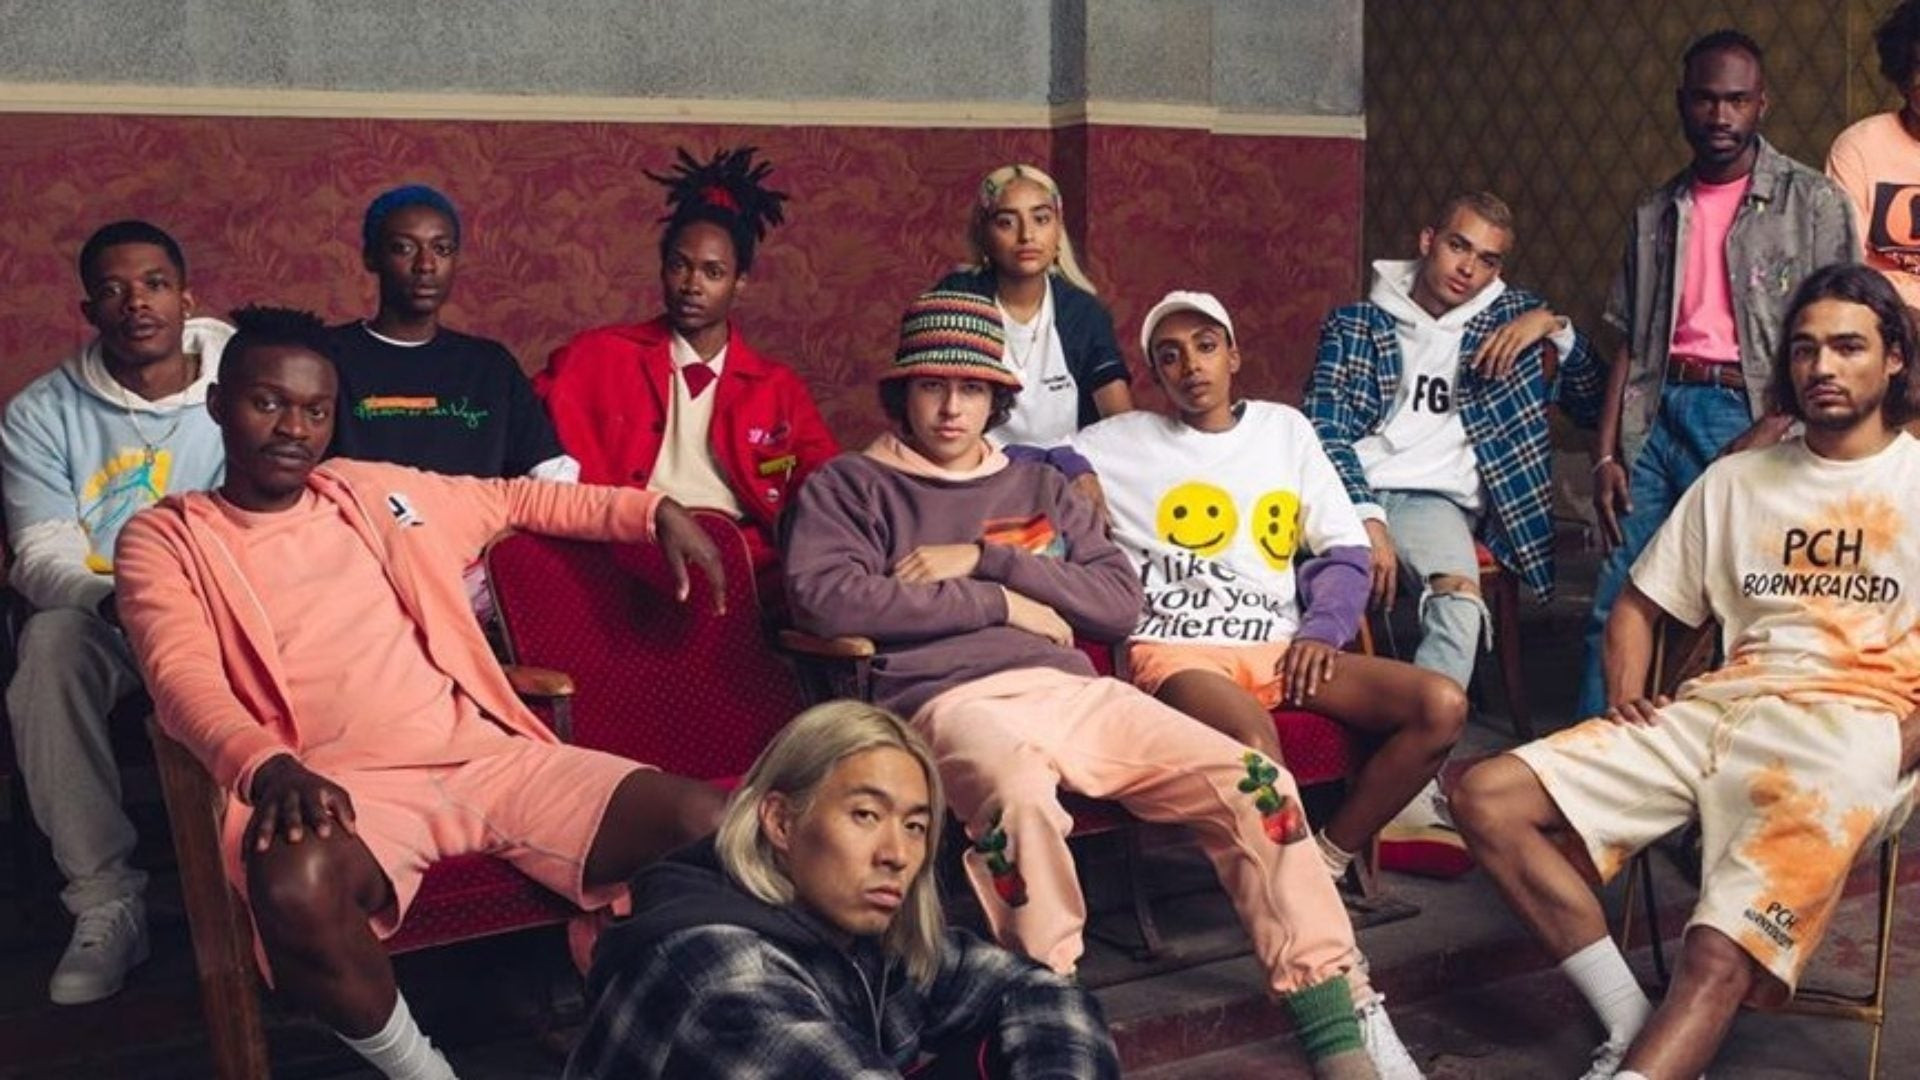 Nordstrom Collaborated With These Streetwear Brands